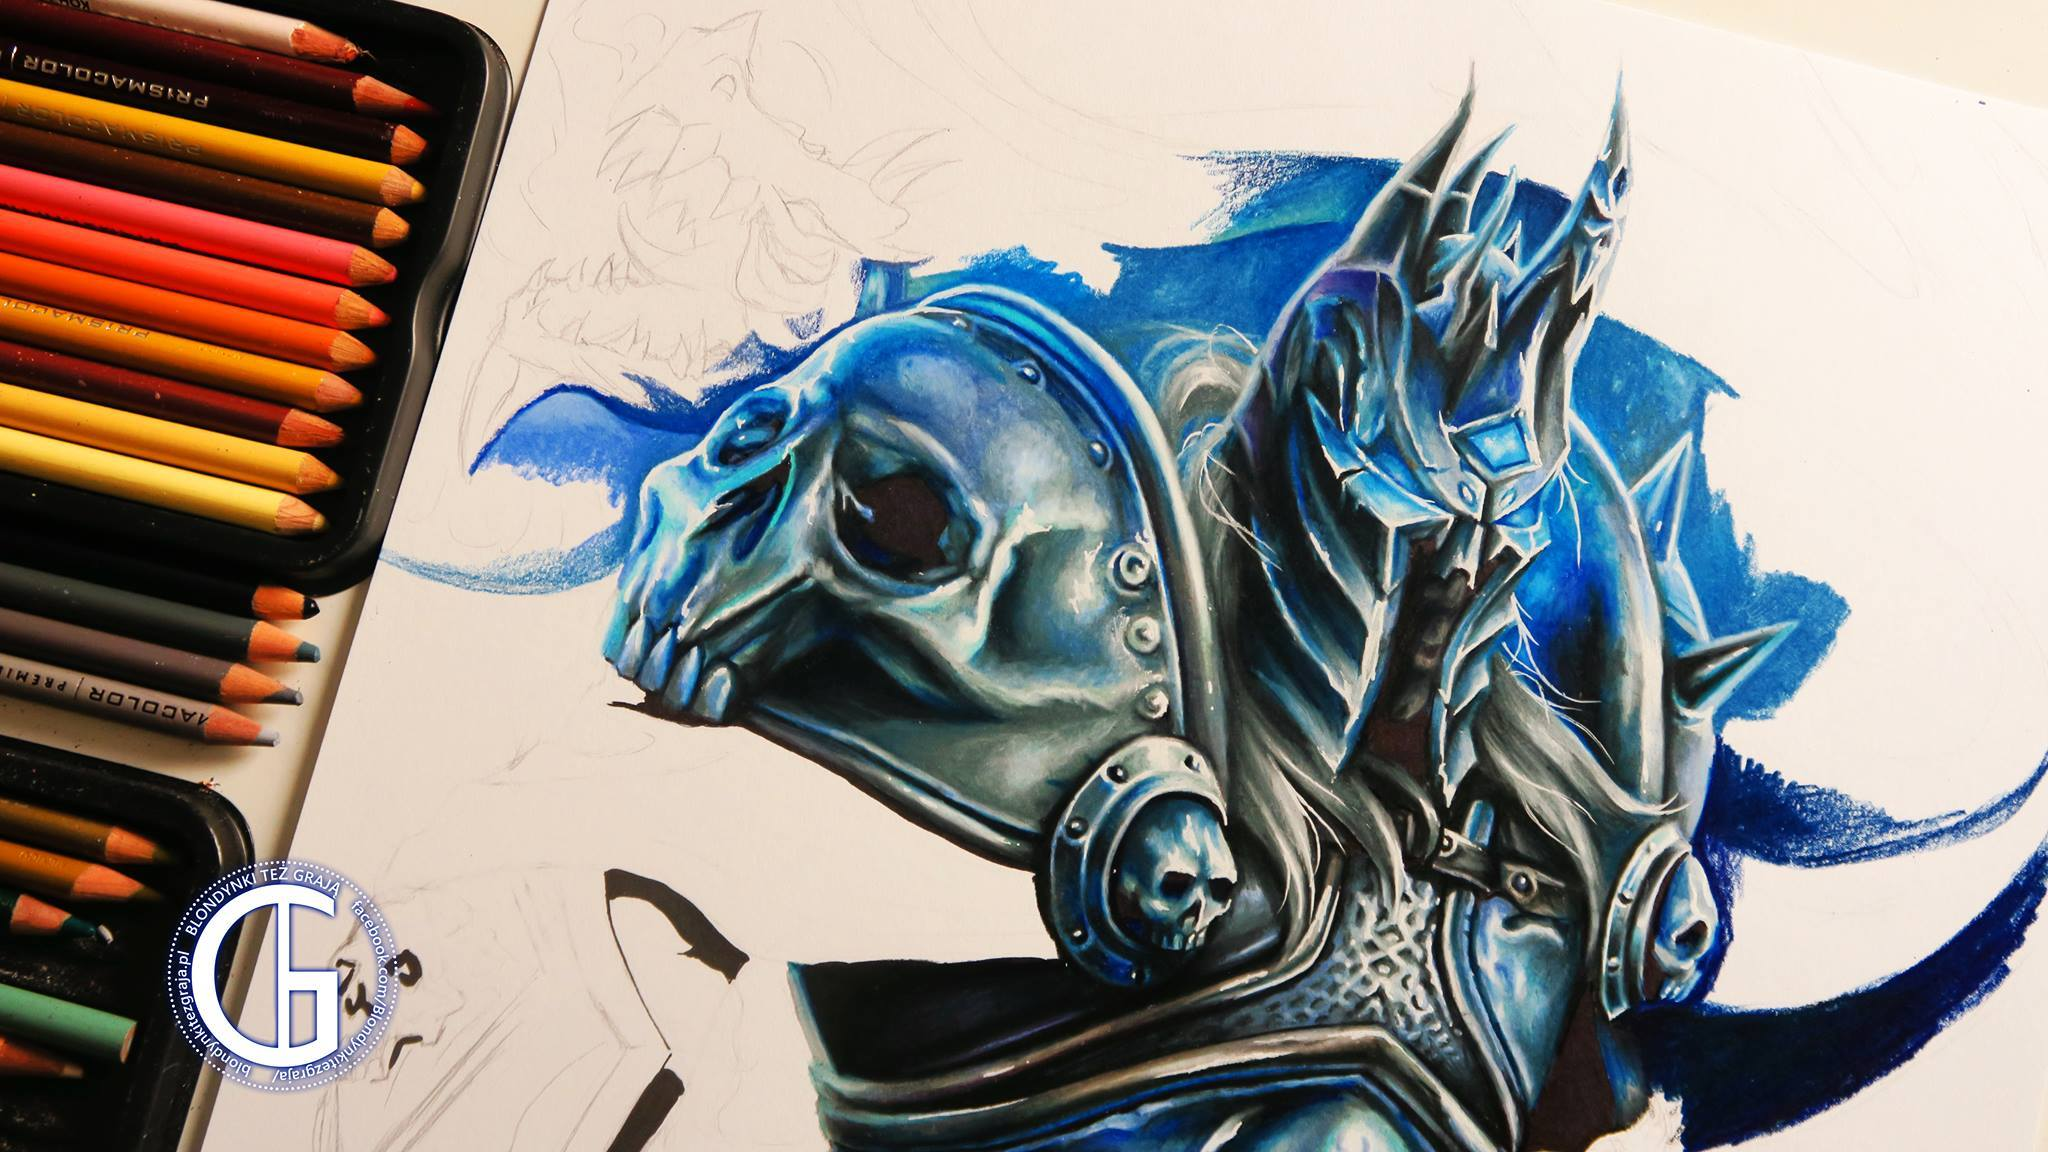 Lich King World of Warcraft by Blondynki Też Grają